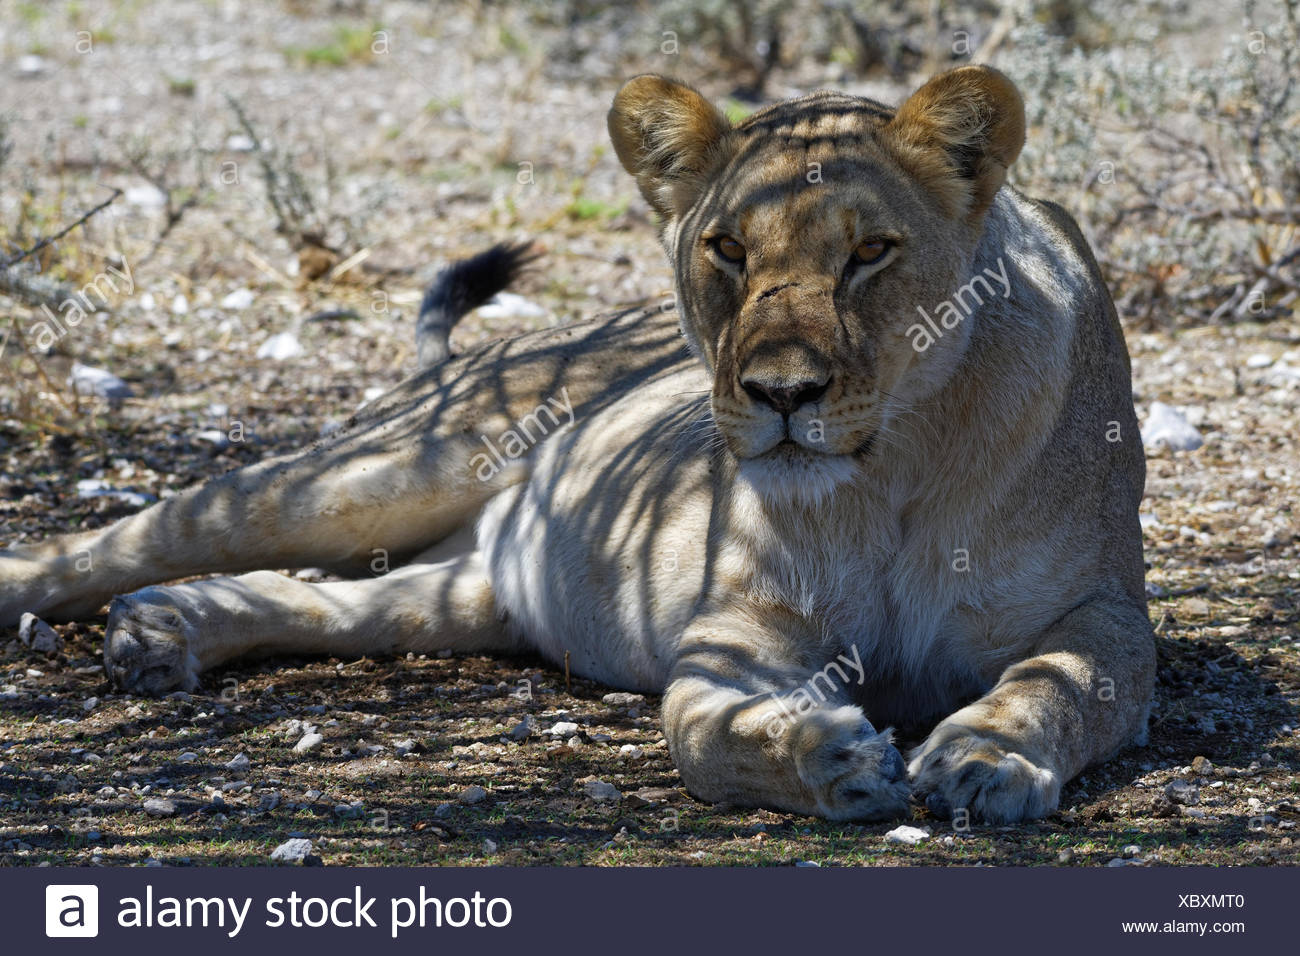 African lion (Panthera leo), lioness lying in the shade of a tree, head up, alert, Etosha National Park, Namibia - Stock Image